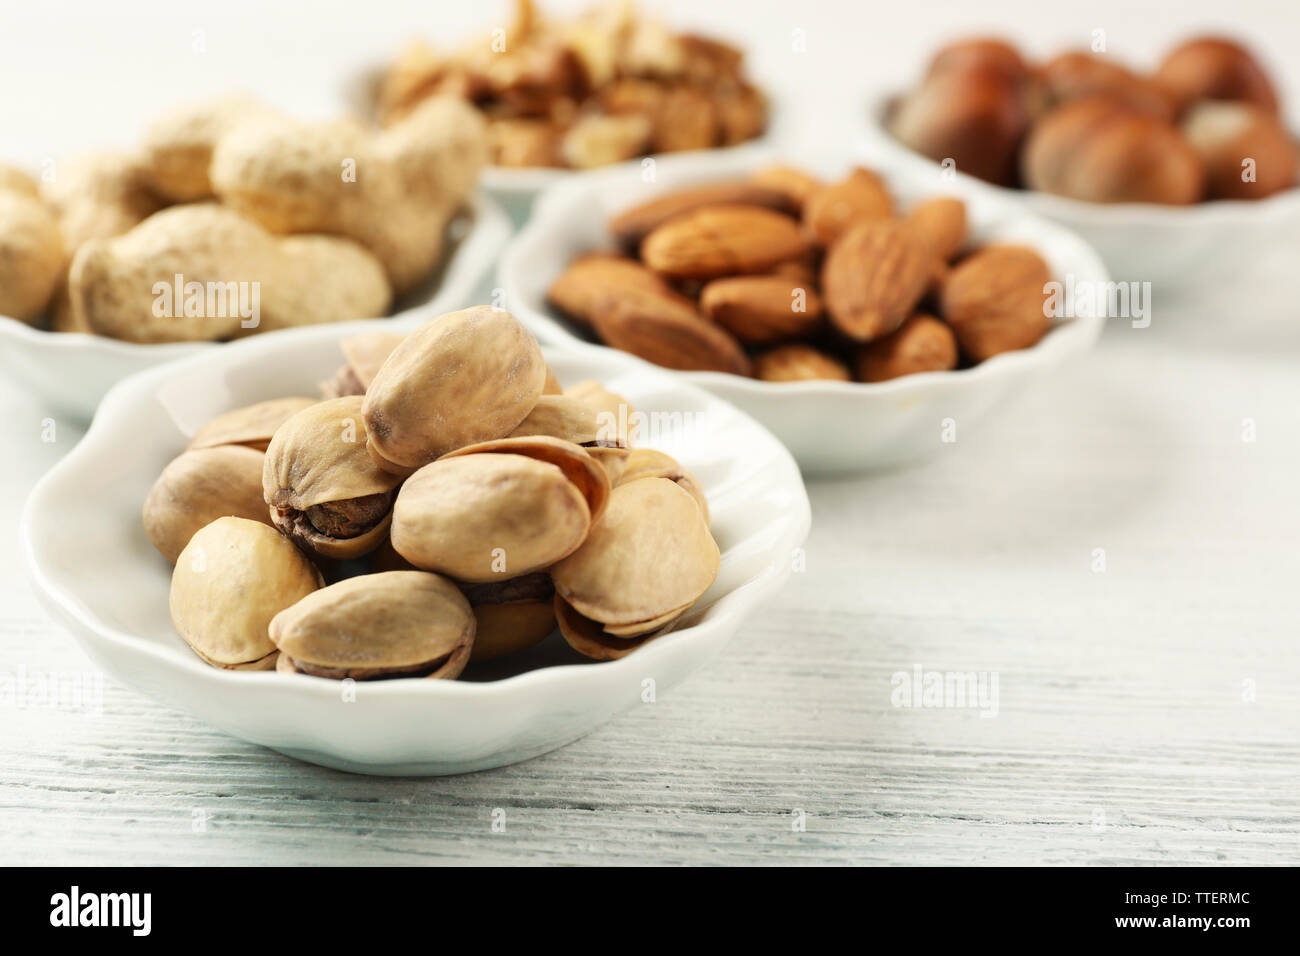 Pistachios, almonds, peanuts, walnut kernels and hazelnuts in the bowls on white wooden table, close-up Stock Photo